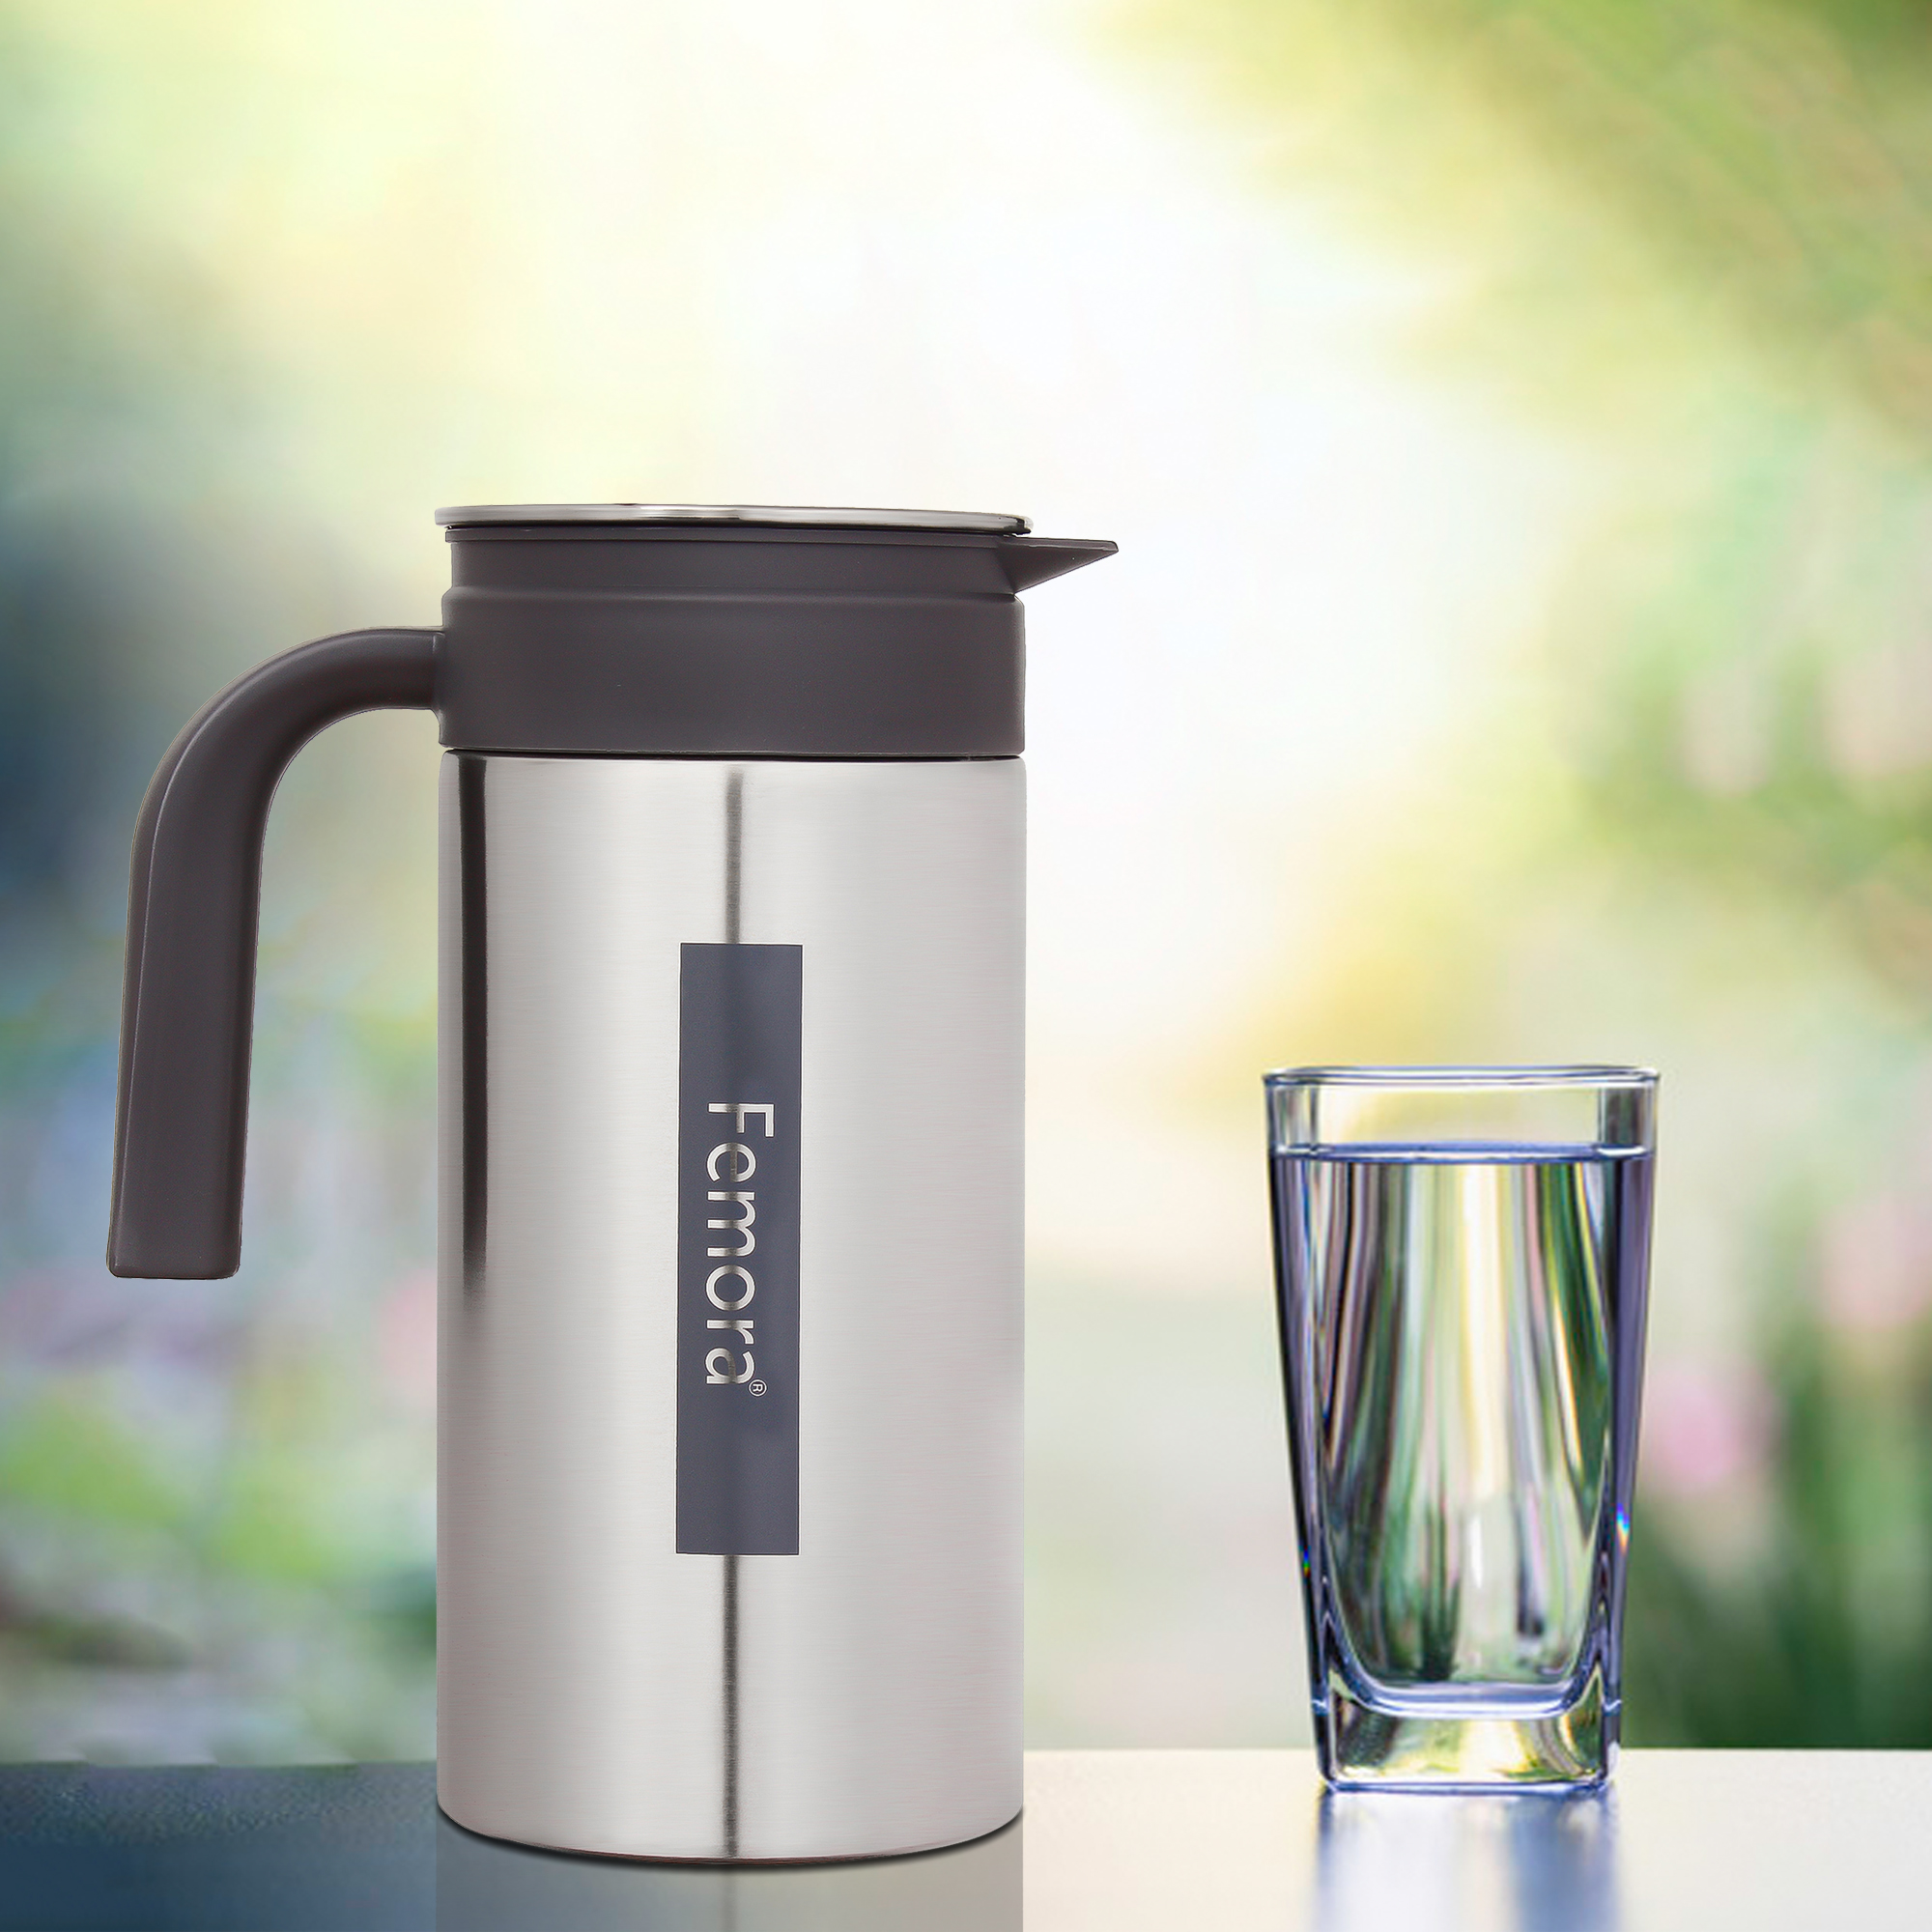 Stainless Steel Grand Jug with Handle - 1.4 L, ( gray ,black lid )